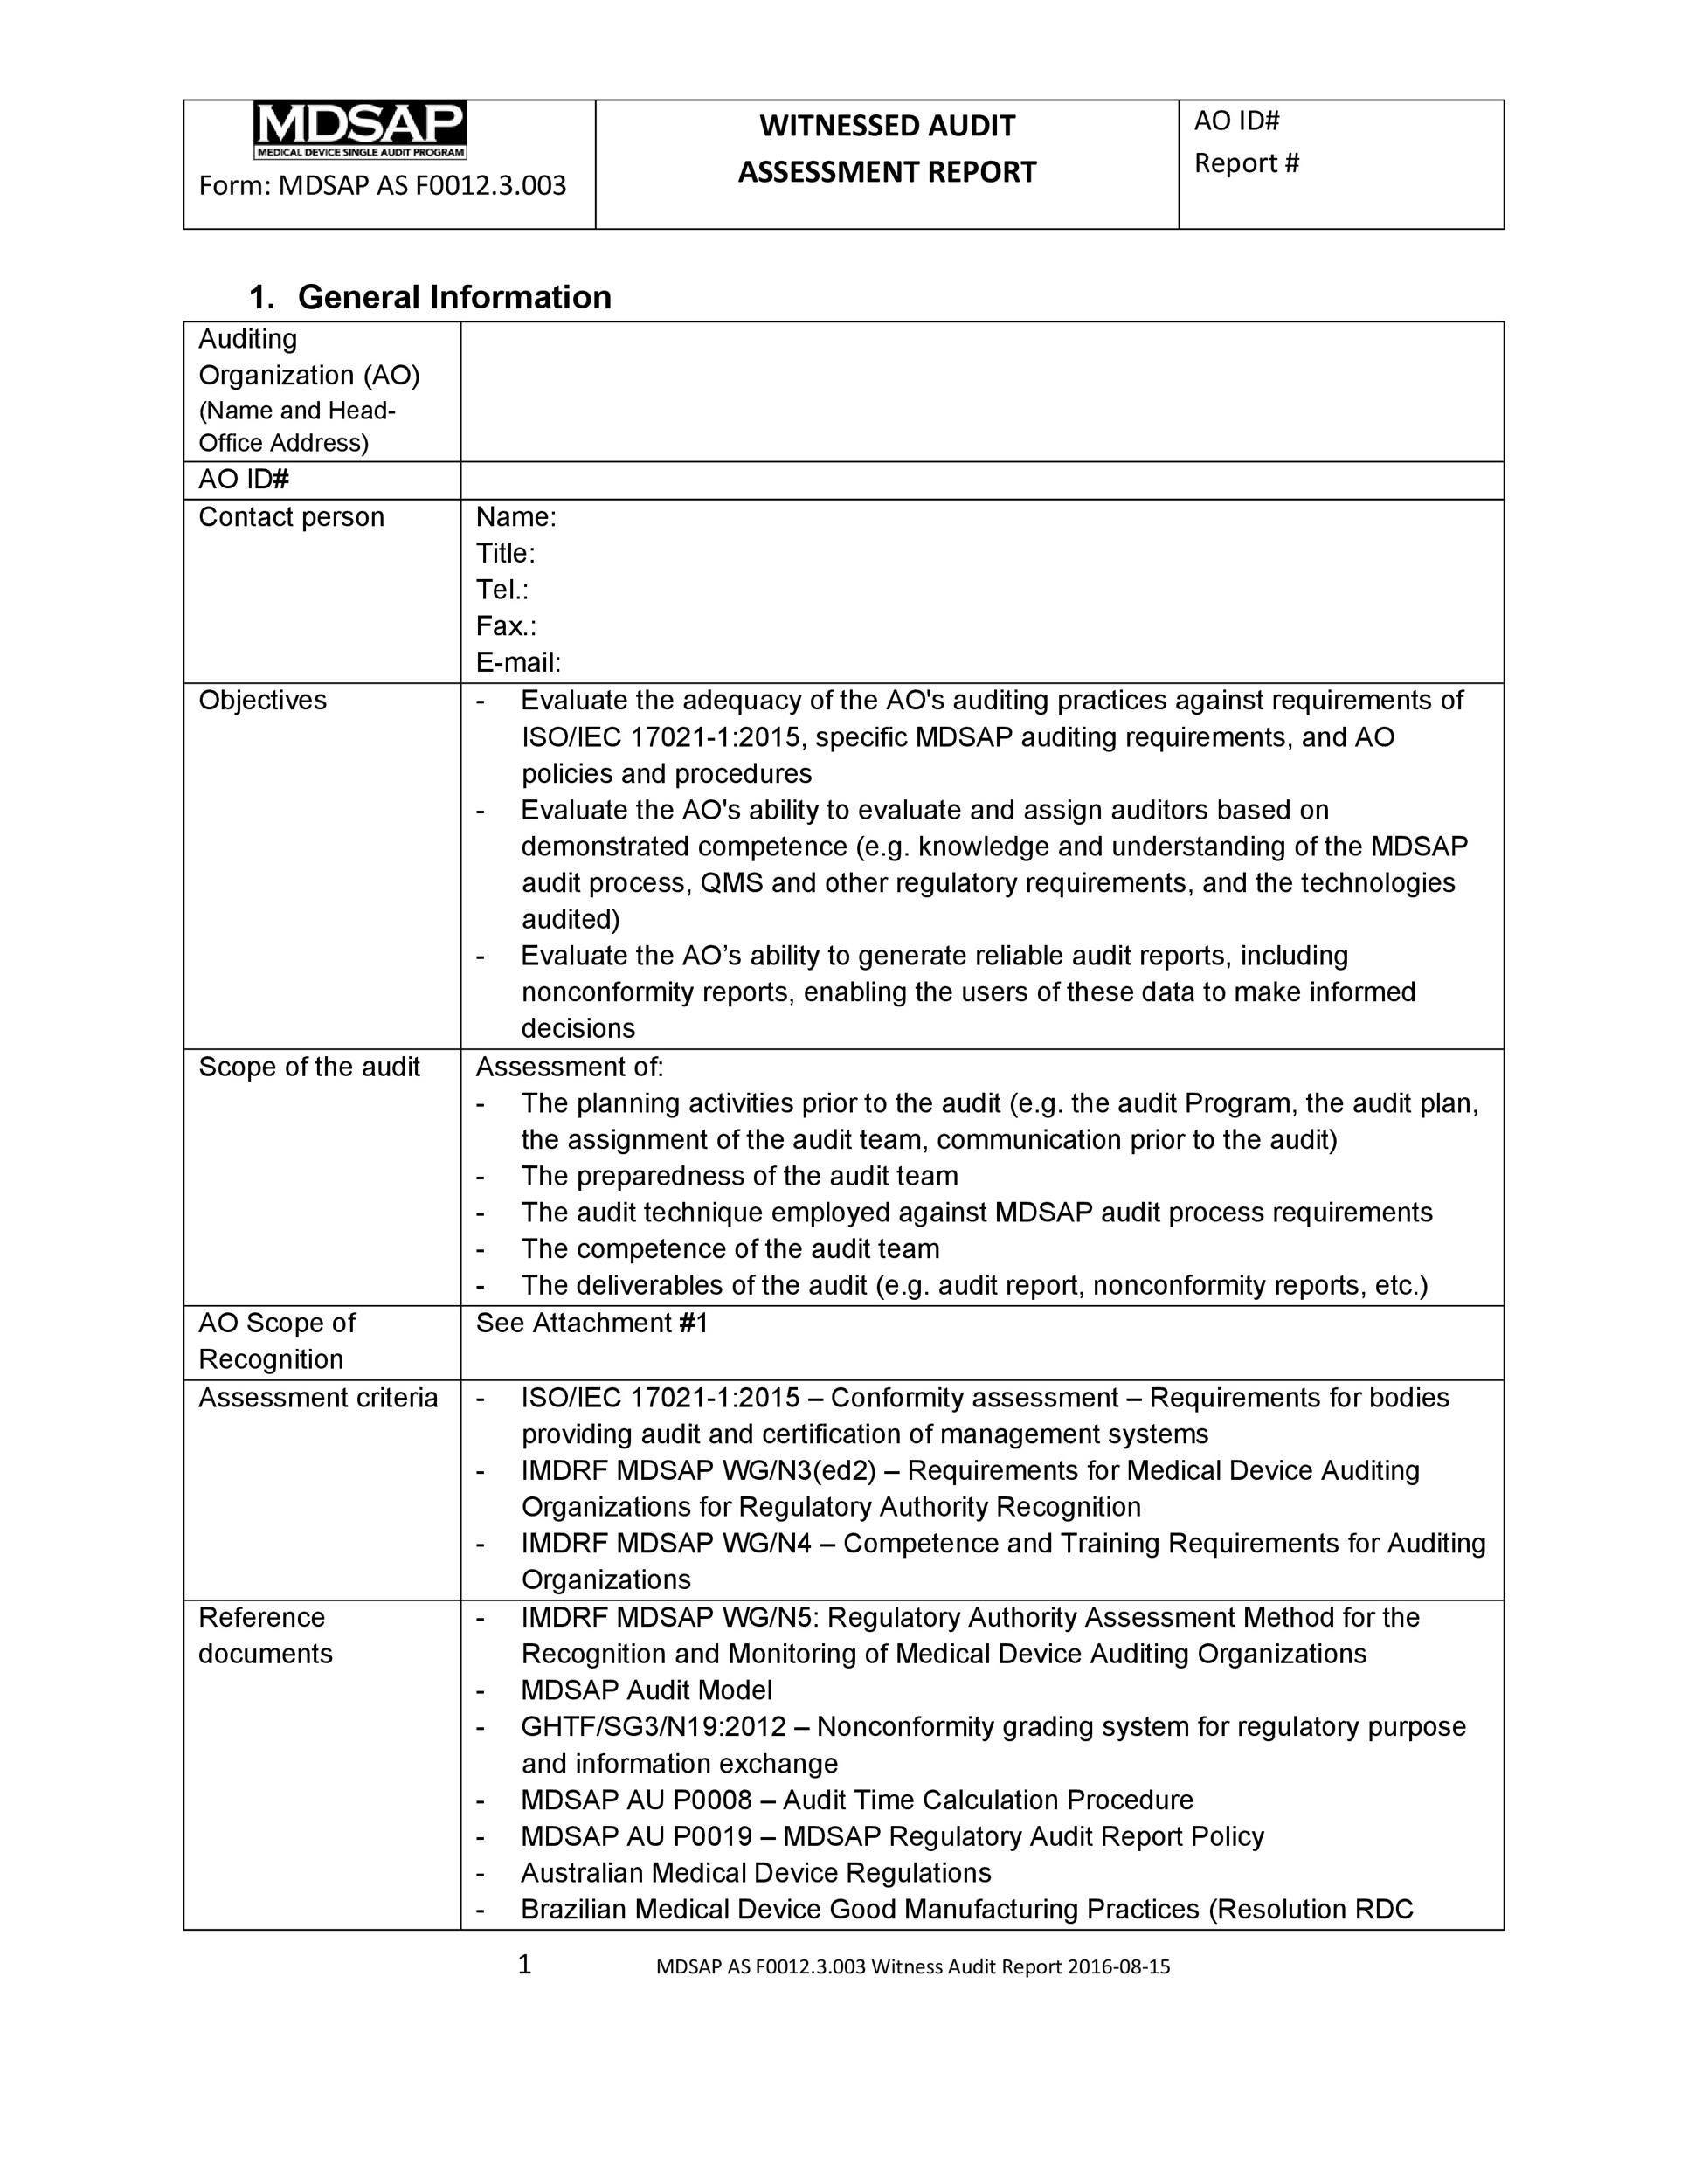 Free audit report template 27